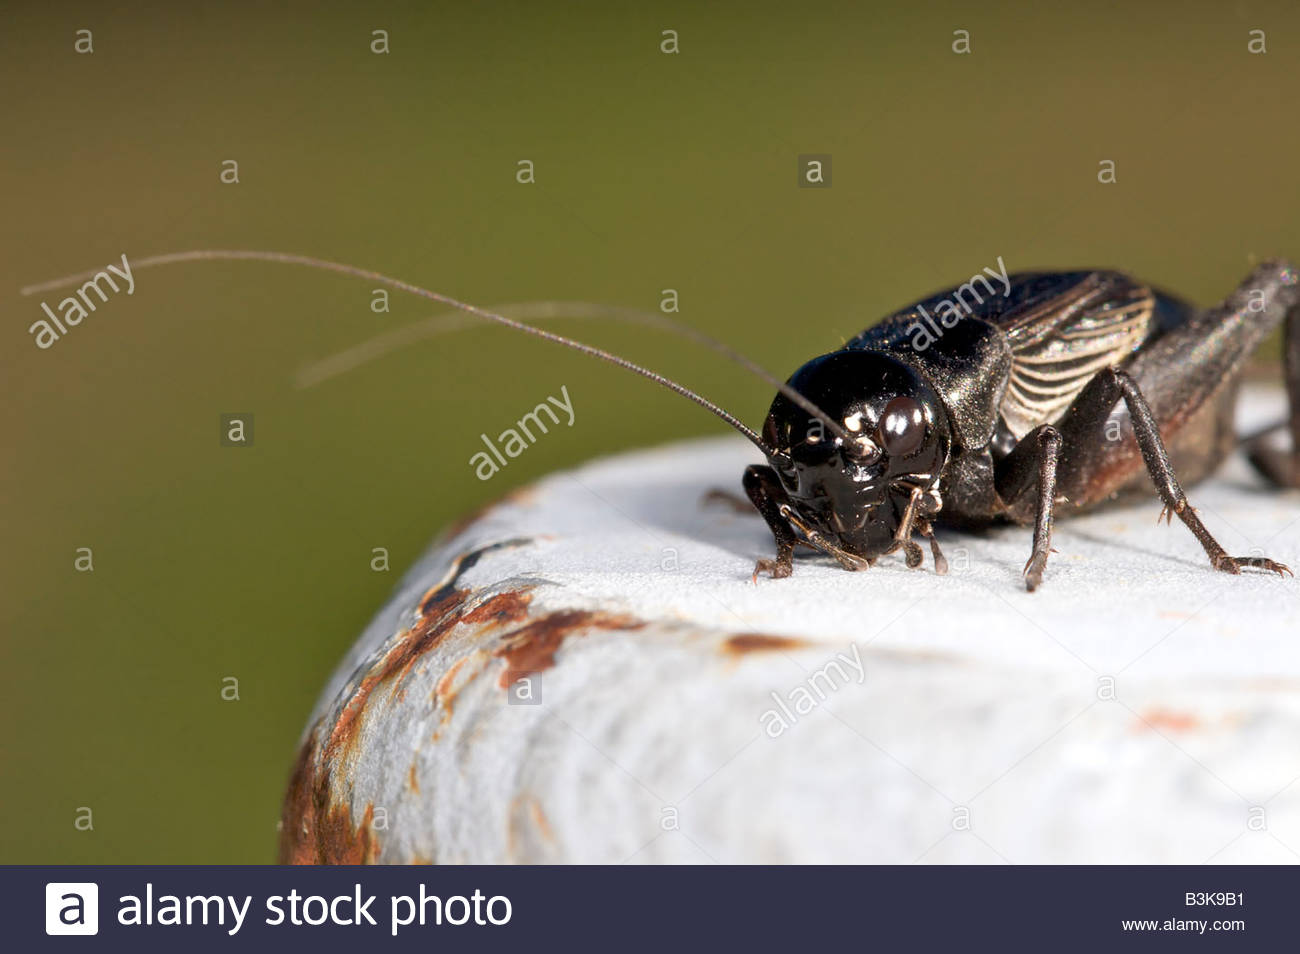 A black cricket sitting on a fence post. - Stock Image